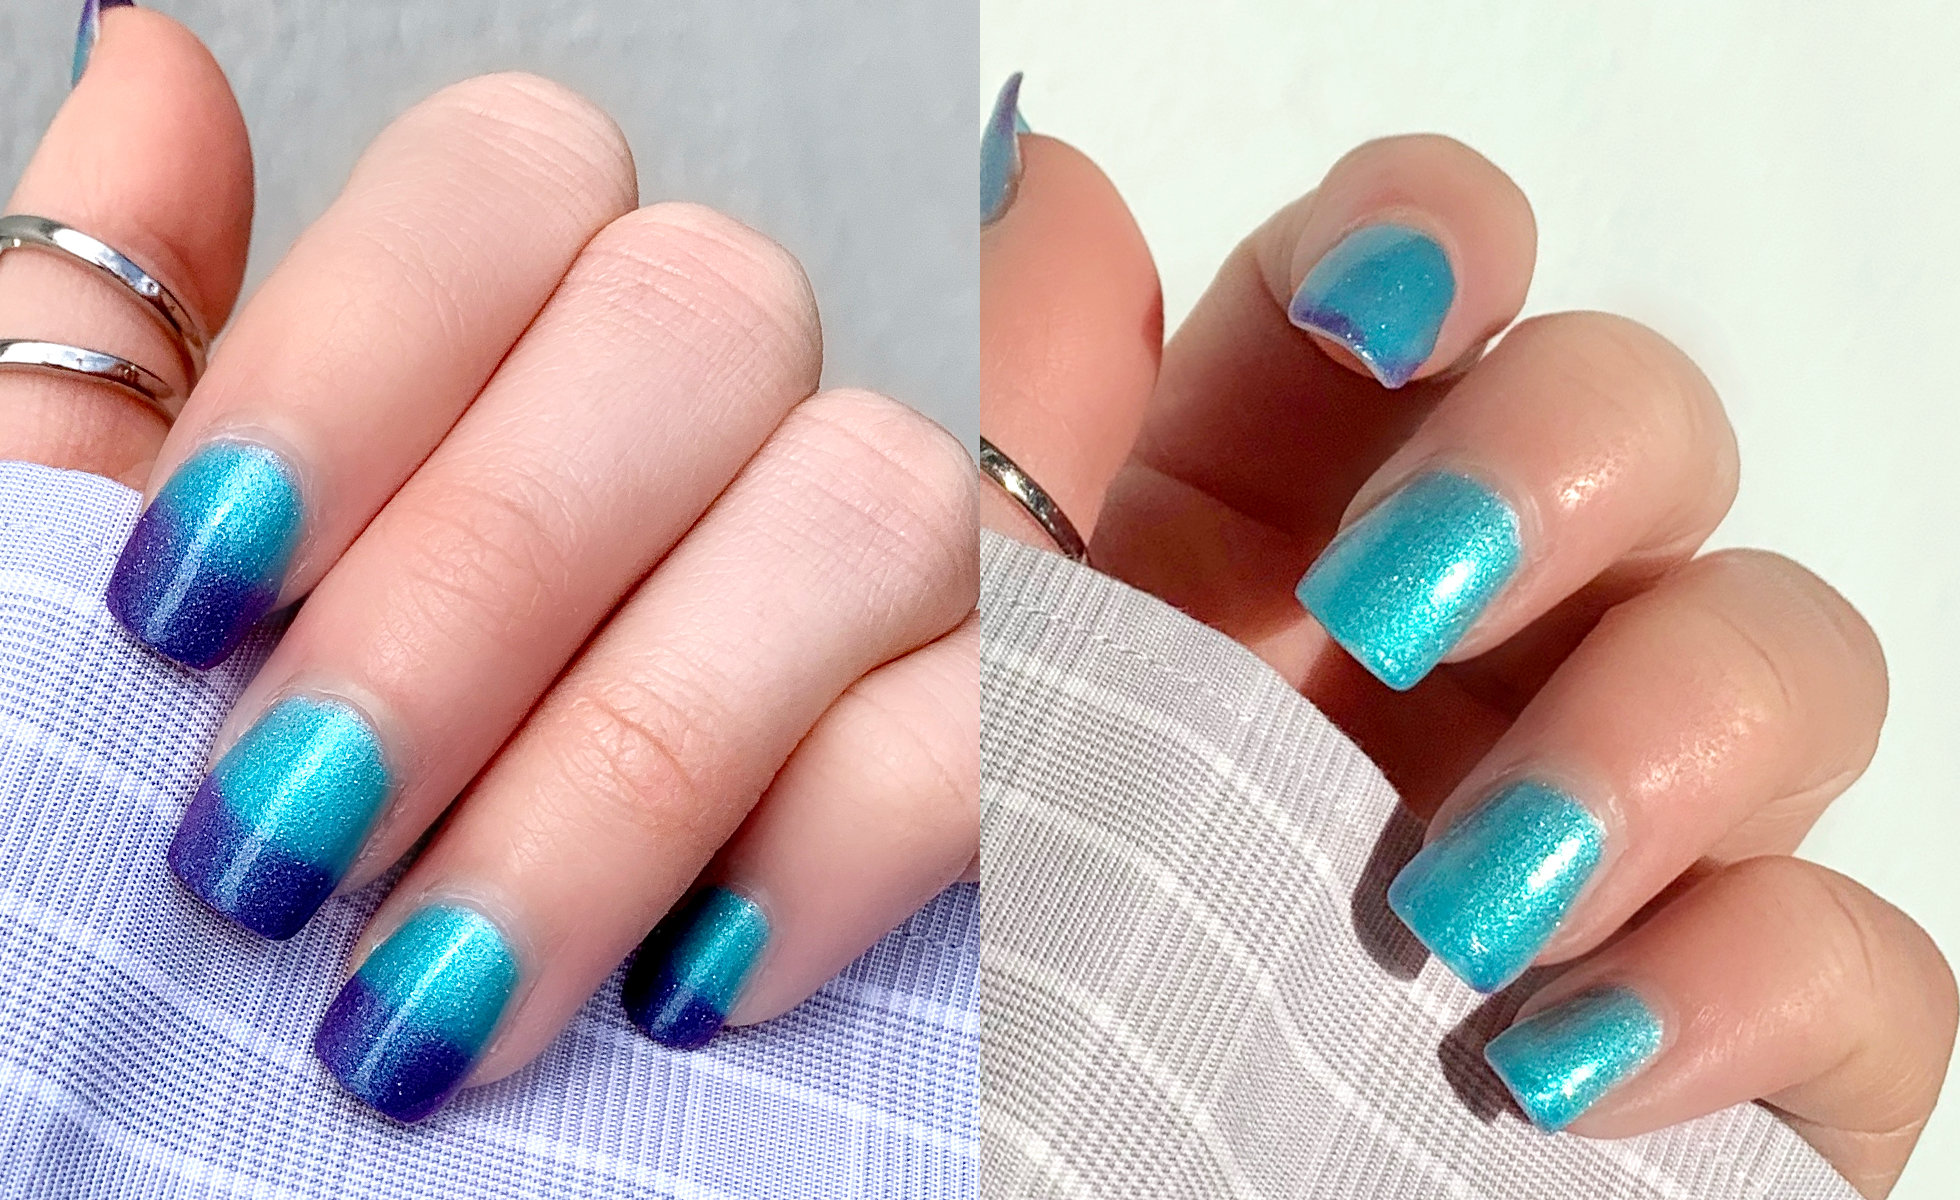 The different looks of Cirque Colors Thermal Nail Polish in Luna. The polish turns violet in cooler temperatures and turns turquoise when it is warmer. (Photo: Victoria Vallecorse)